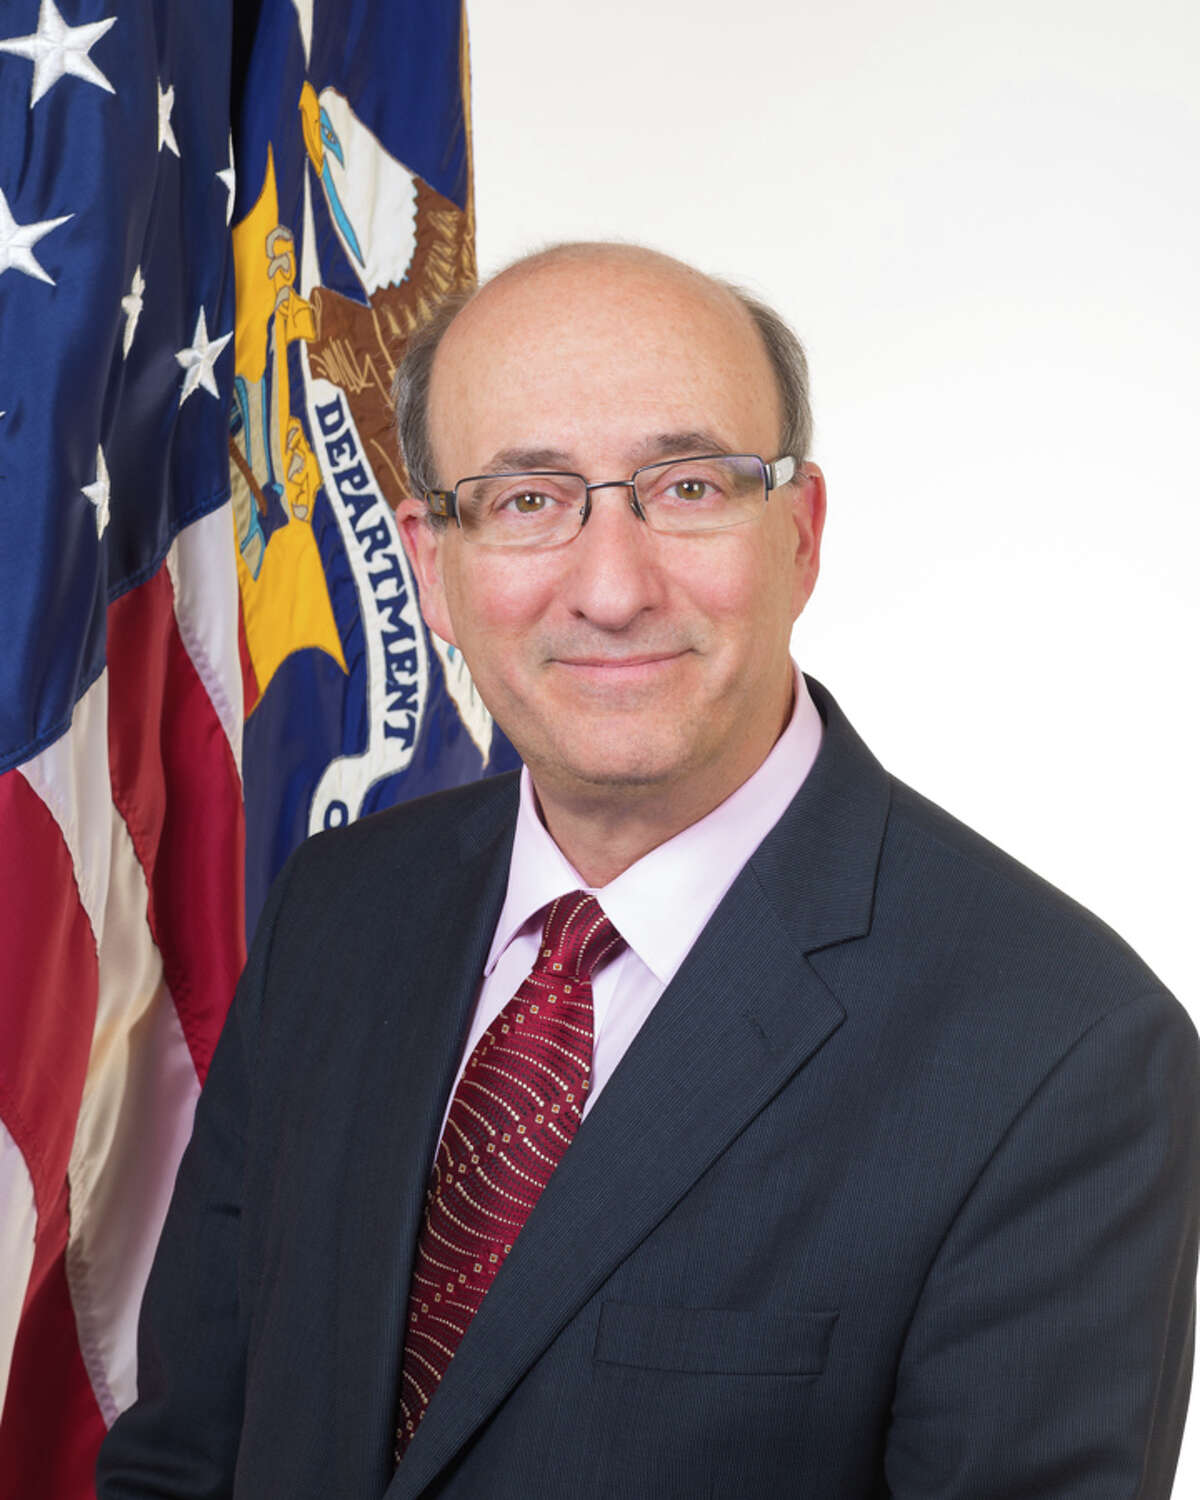 David Michaels is the head of the U.S. Occupational Safety and Health Administration.